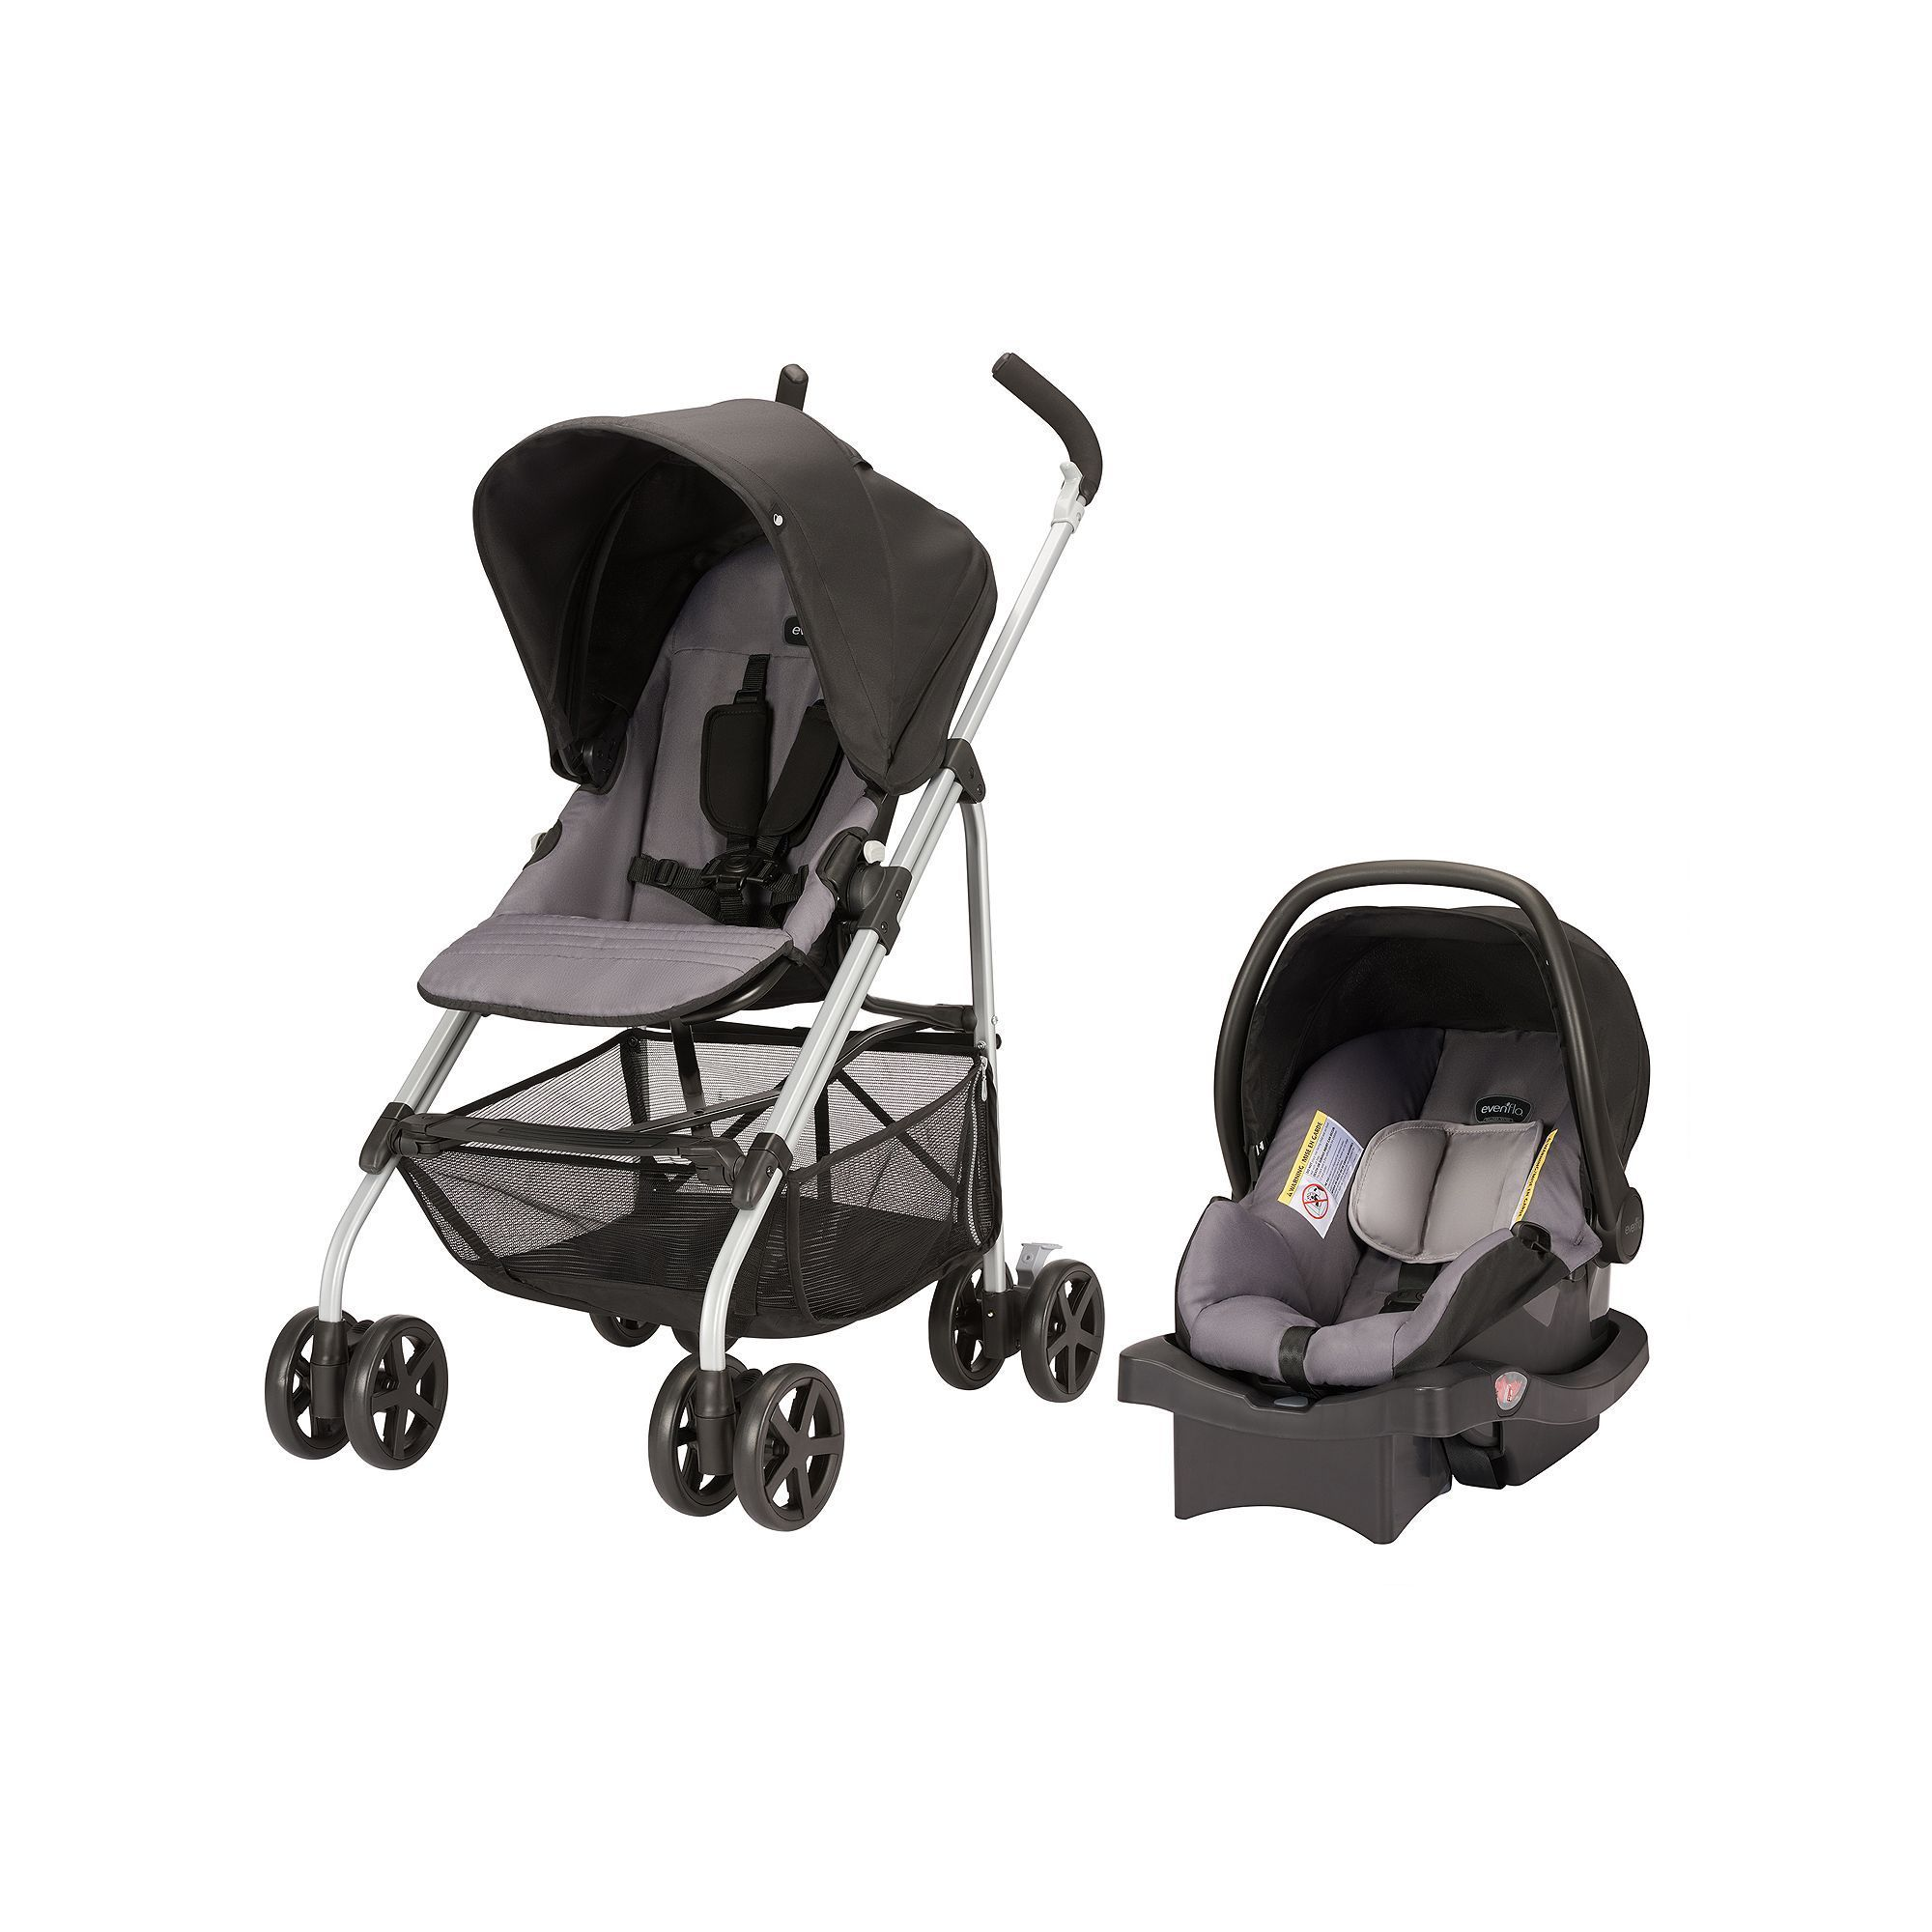 Evenflo Round Trip Stroller Travel System Products Travel System